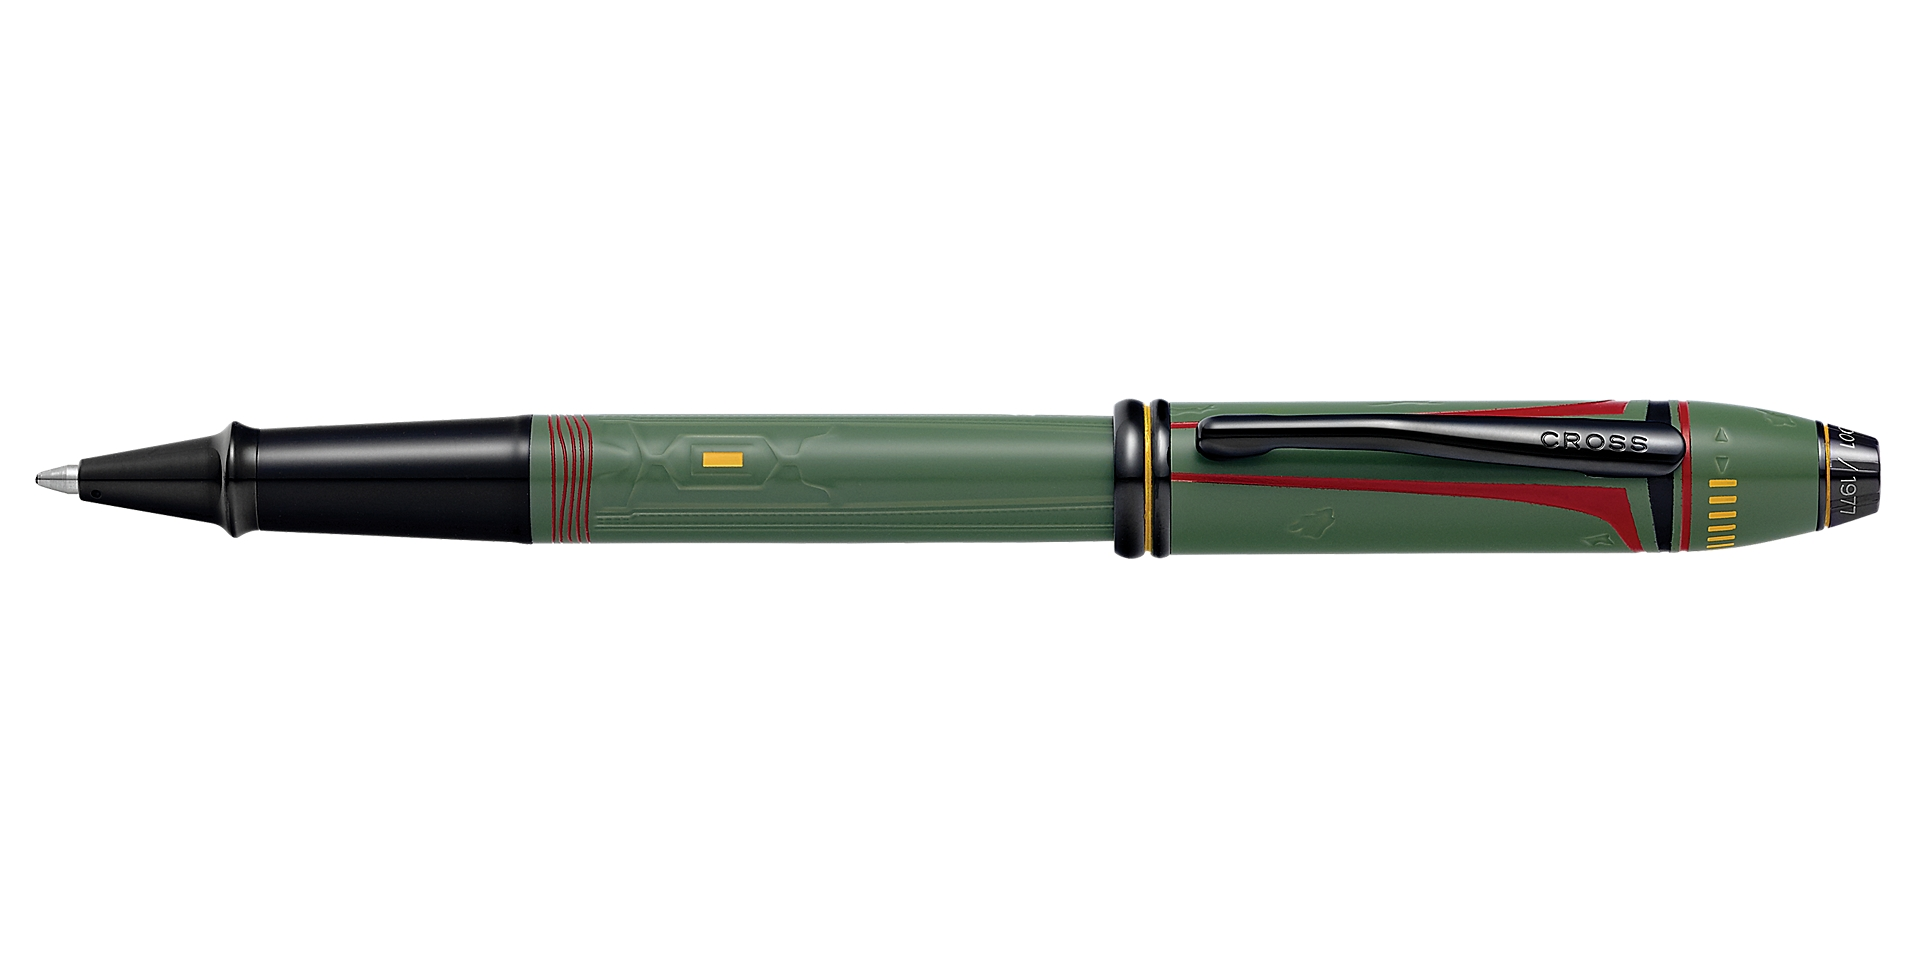 Cross Cross Townsend Star Wars™ Limited-Edition Boba Fett™ Rollerball  ... Picture